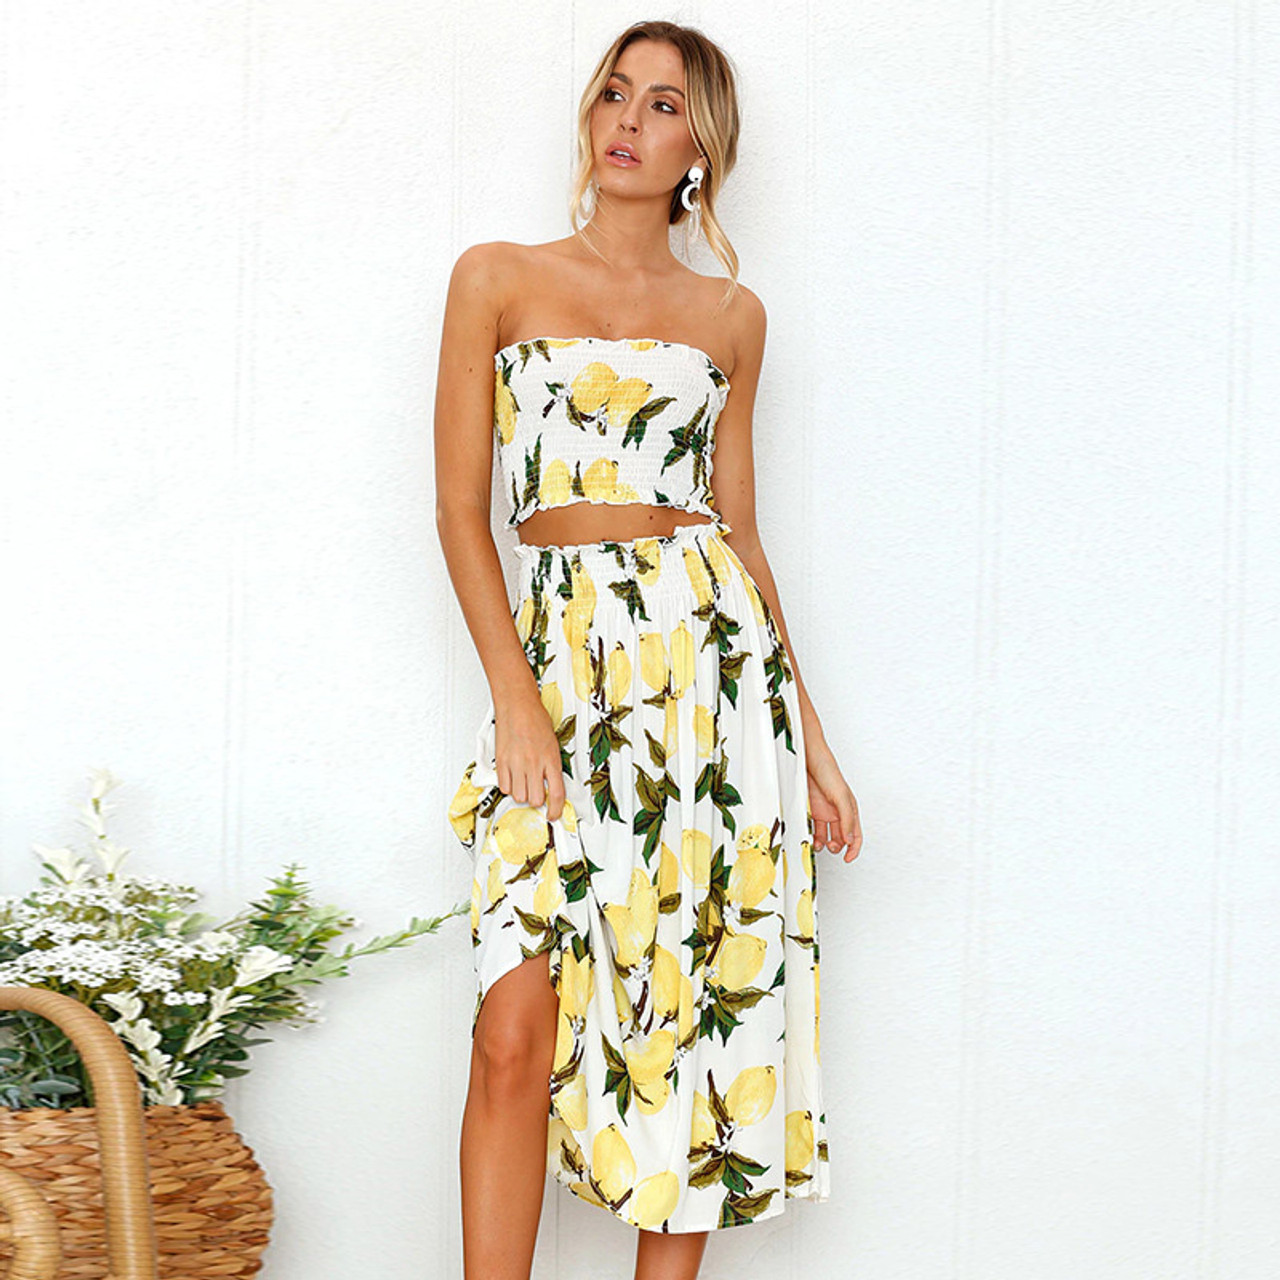 c7afb907f0 Summer floral print 2 piece set dress women sexy strapless wrapped ...